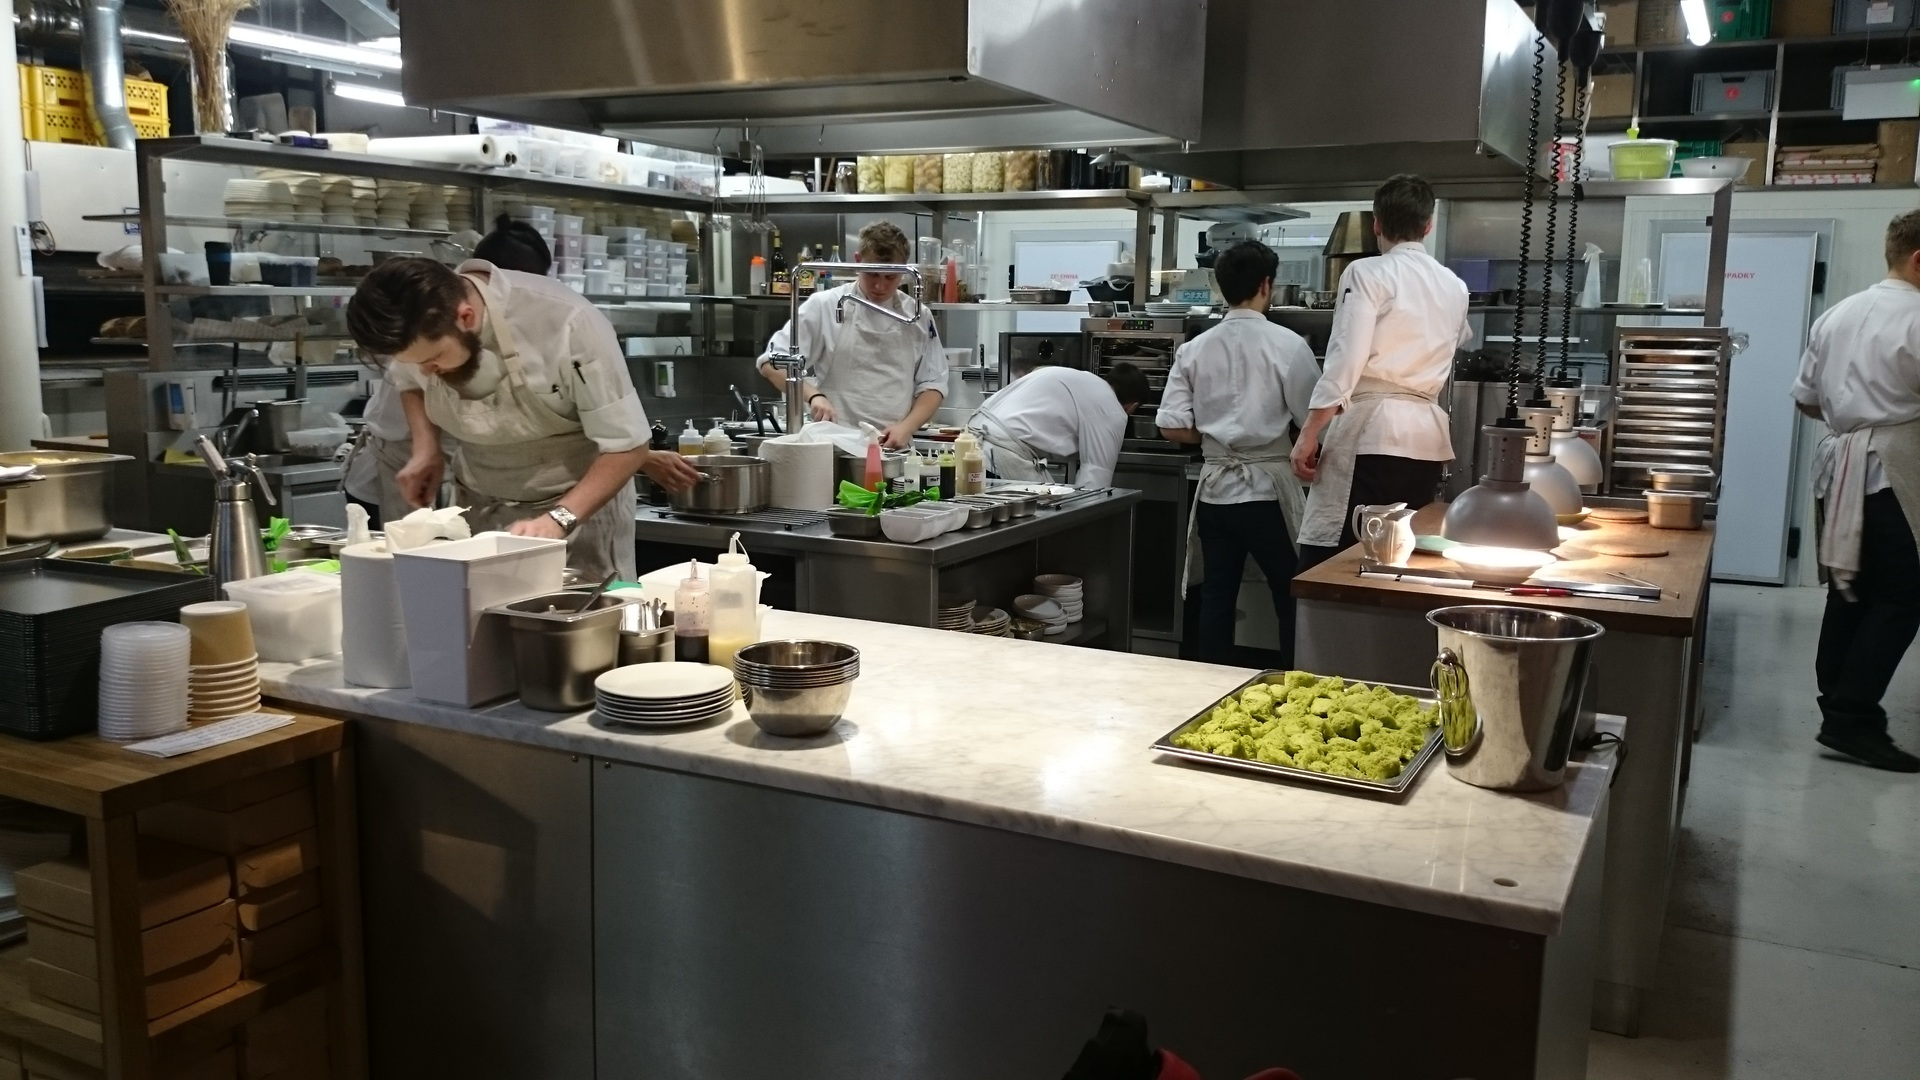 Wondering how to help your kitchen staff avoid mental burnout? Here's how to maintain work life balance in the restaurant industry.